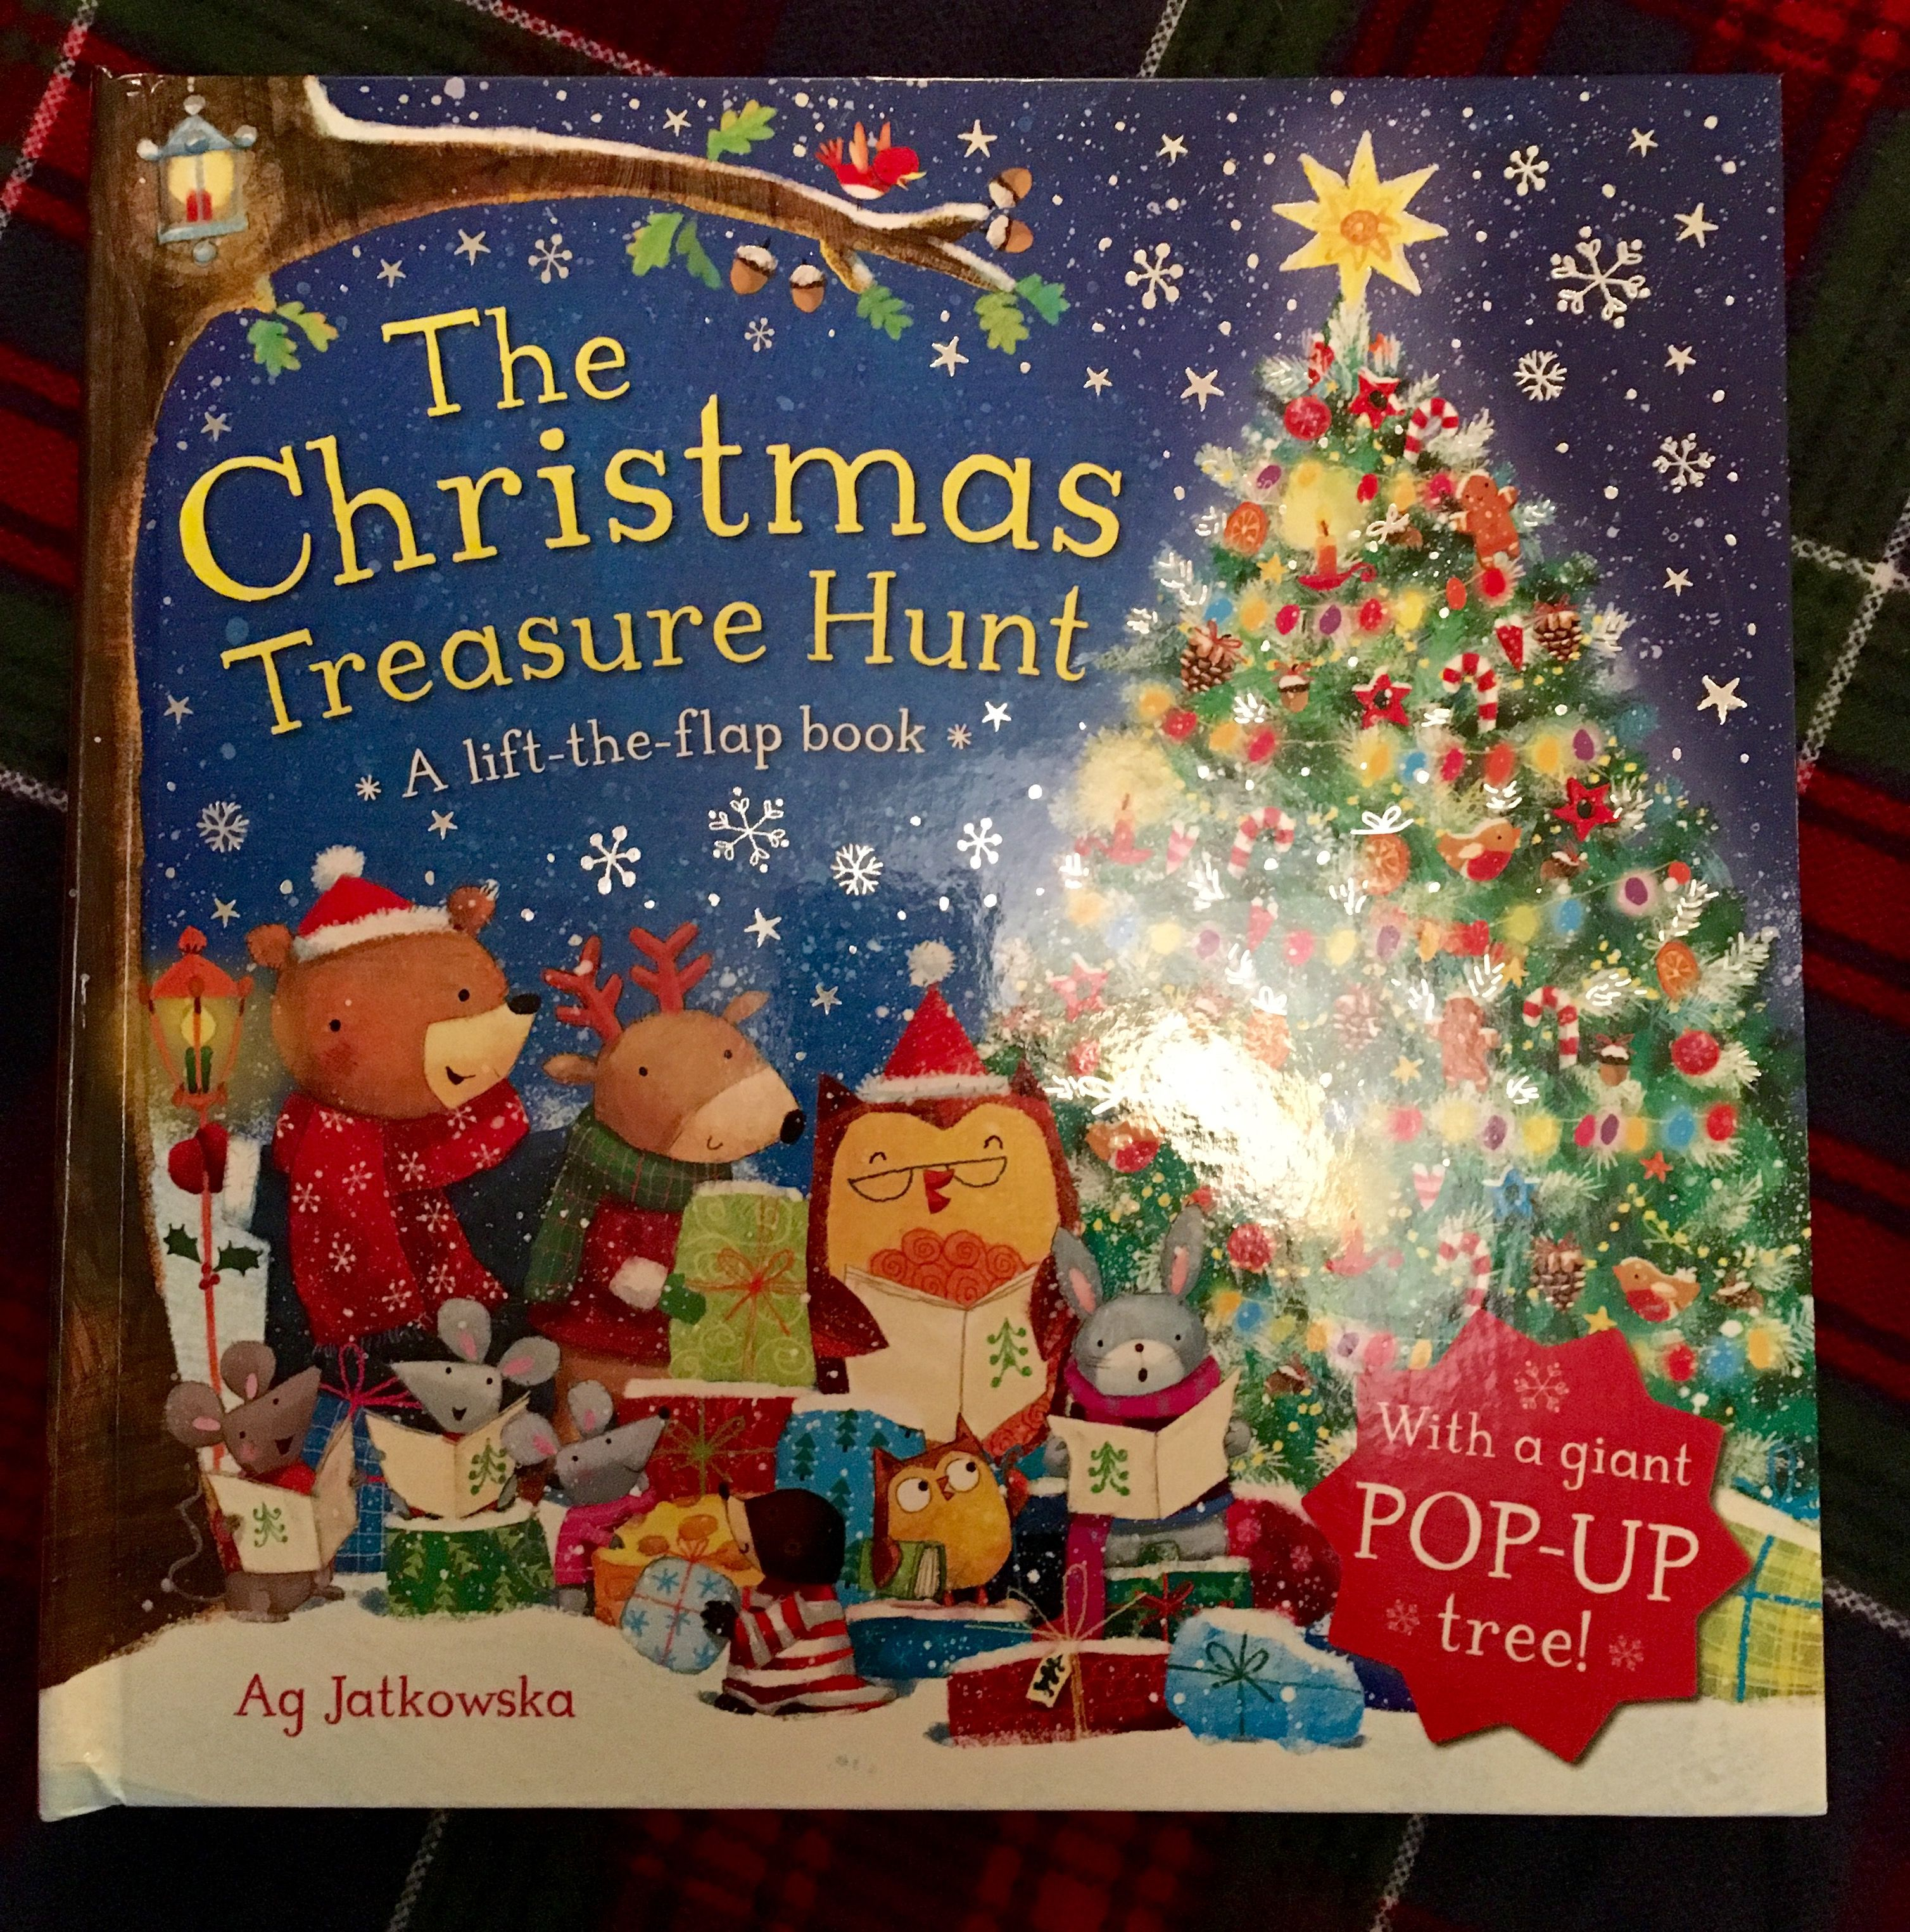 Day 20 of the #2016BookAdventCalendar - The Christmas Treasure Hunt - another pop up book.